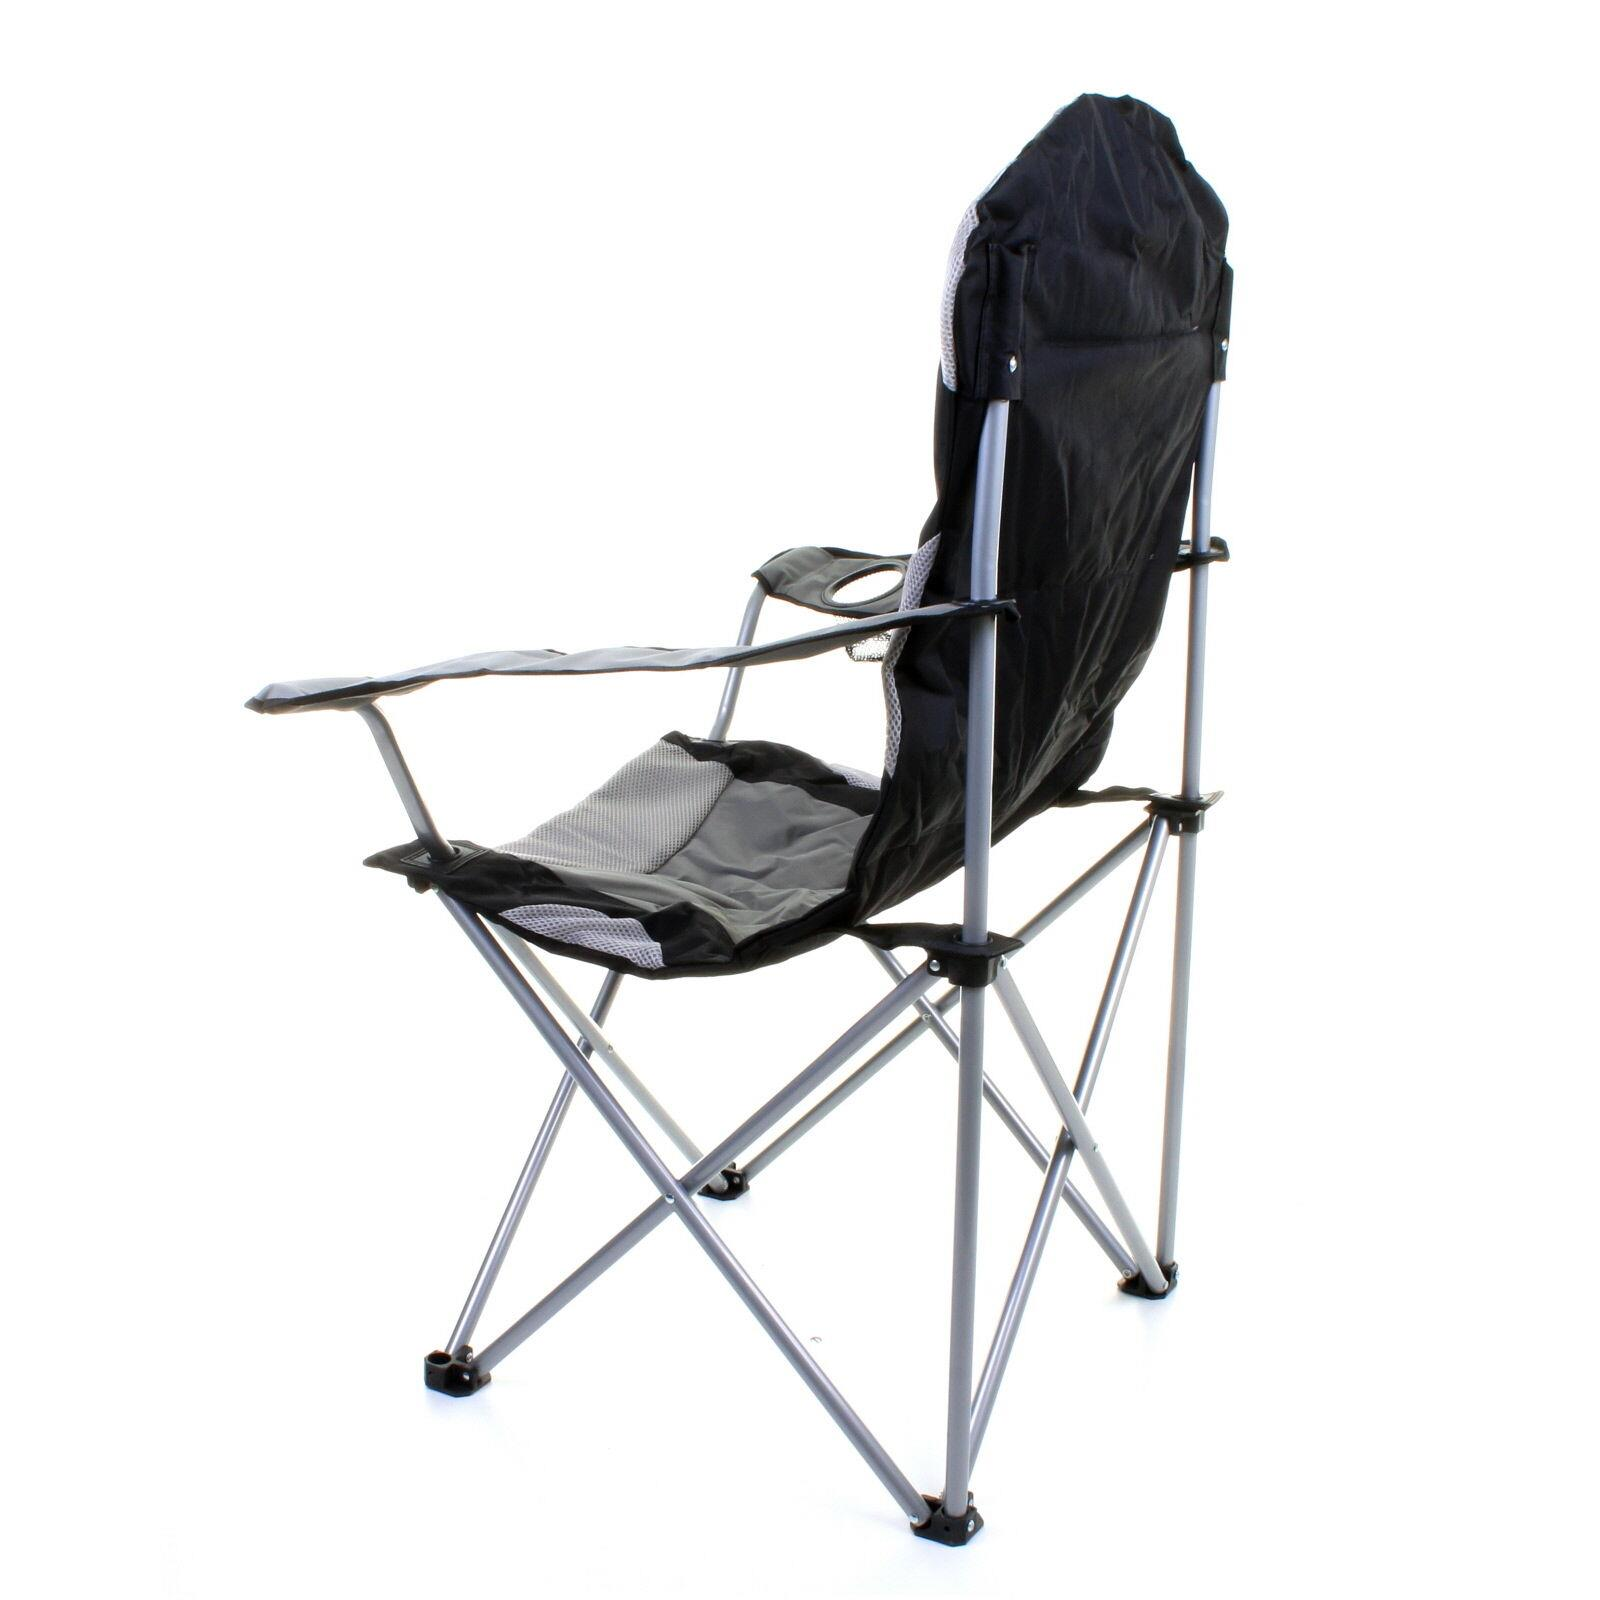 thumbnail 10 - Folding Camping Deluxe Chairs Heavy Duty Luxury Padded with Cup Holder High Back